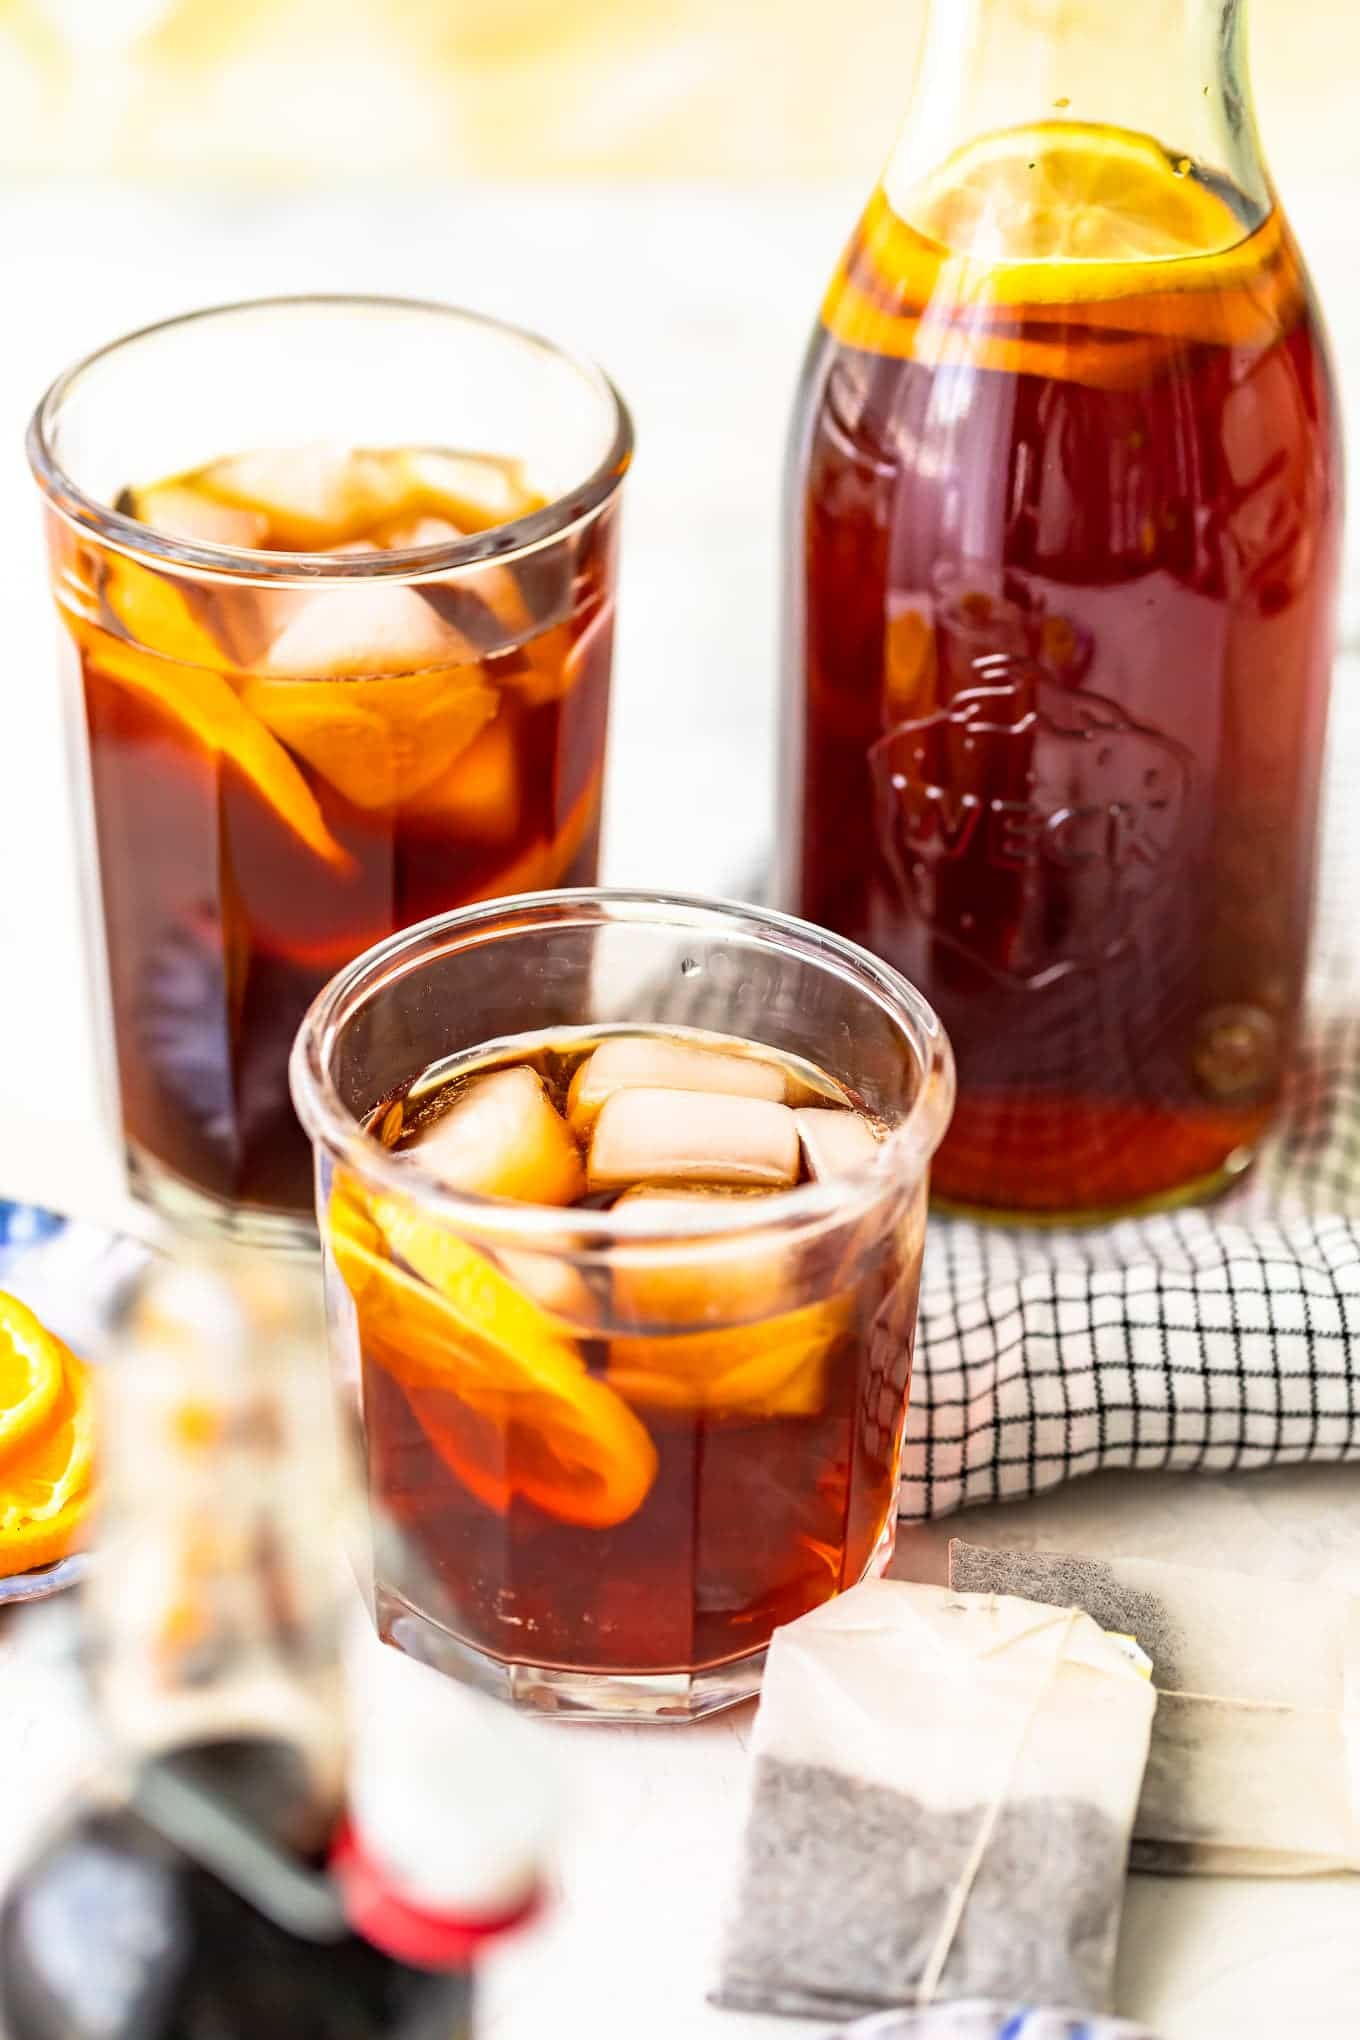 Three glasses of homemade sweet tea